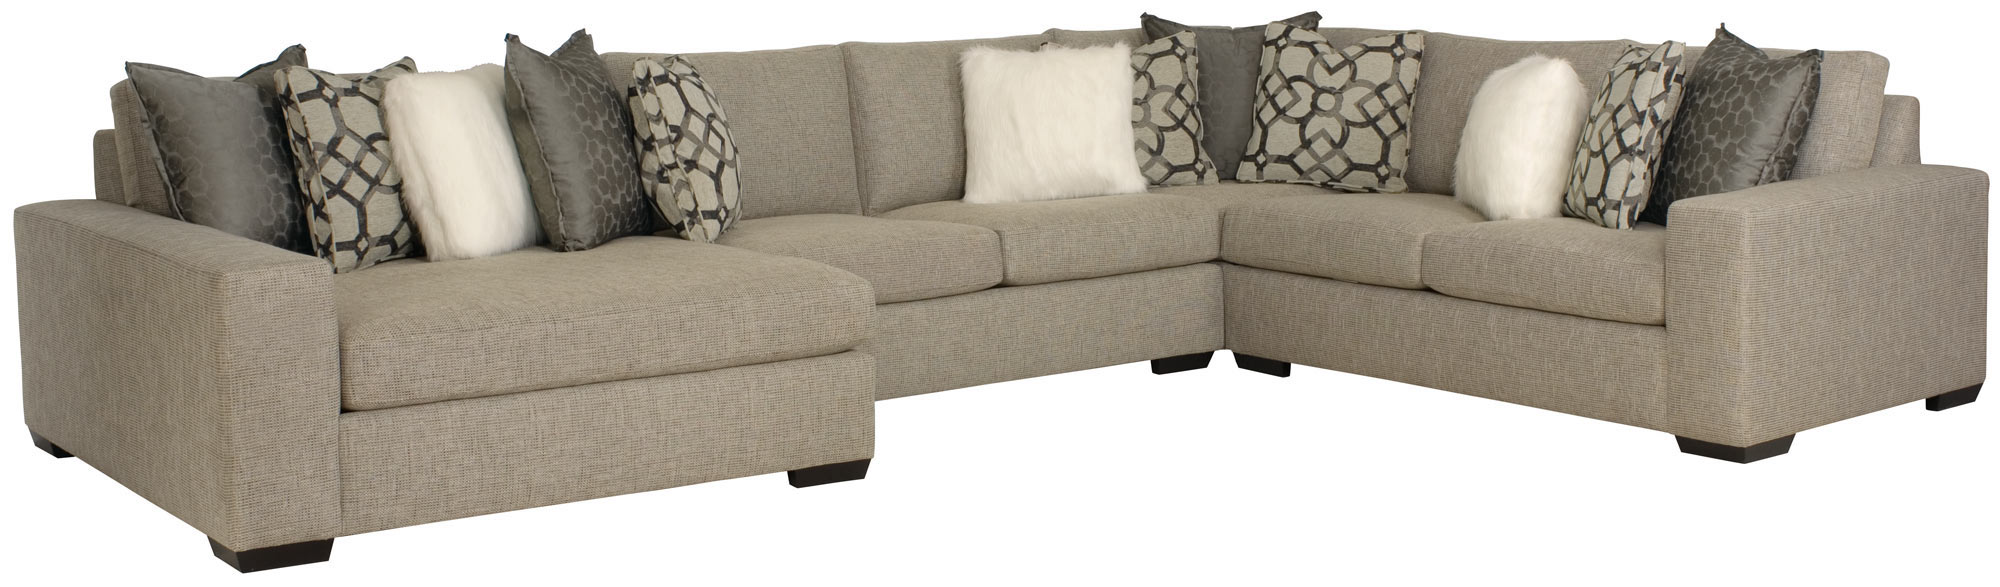 Bernhardt Sectional Sofa Bernhardt Germain Modern Plush